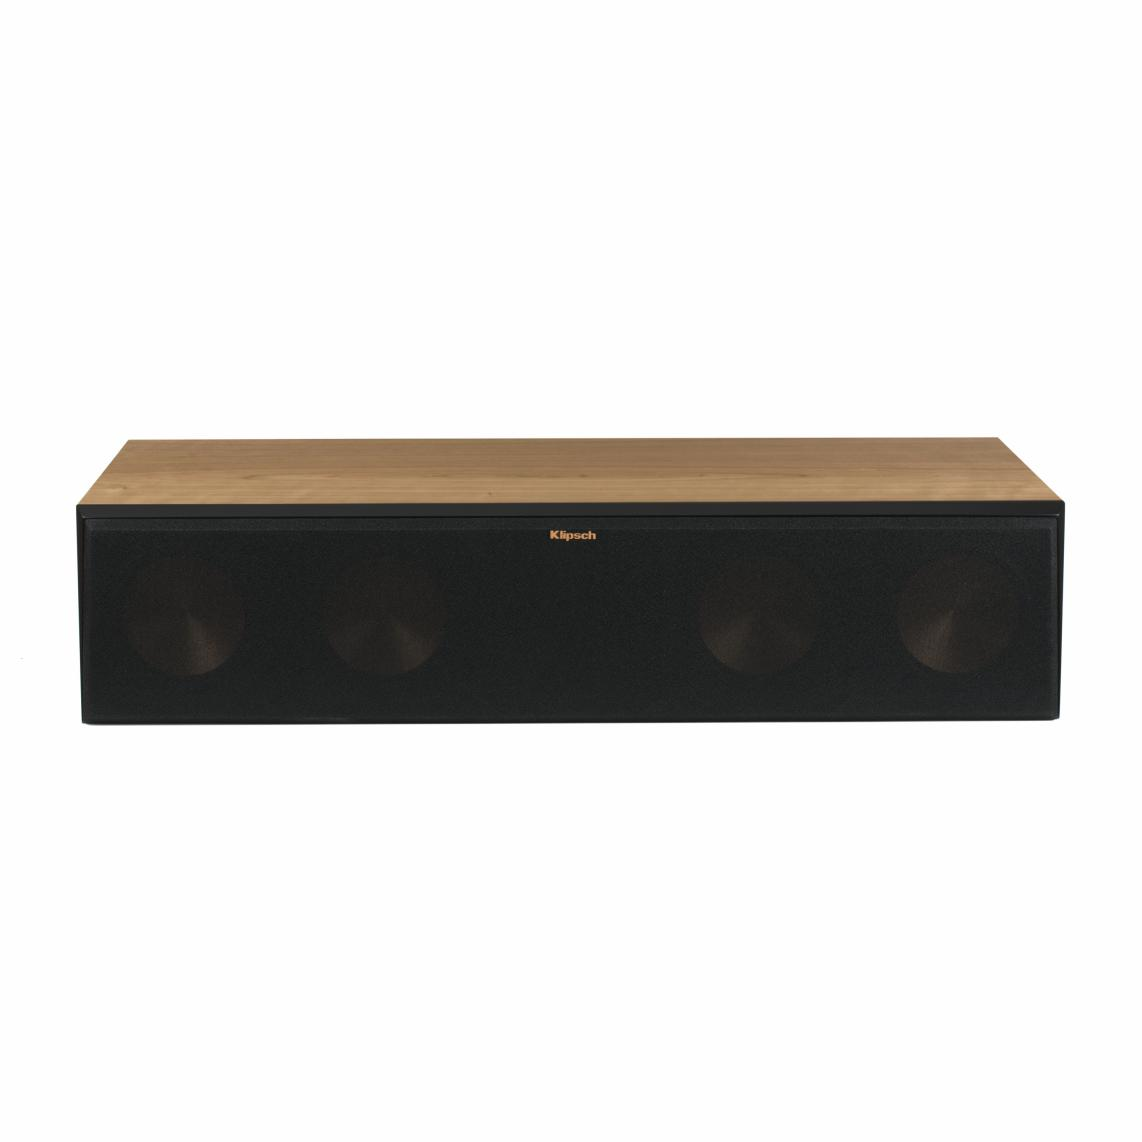 klipsch rc 64 iii cherry center channel speaker. Black Bedroom Furniture Sets. Home Design Ideas